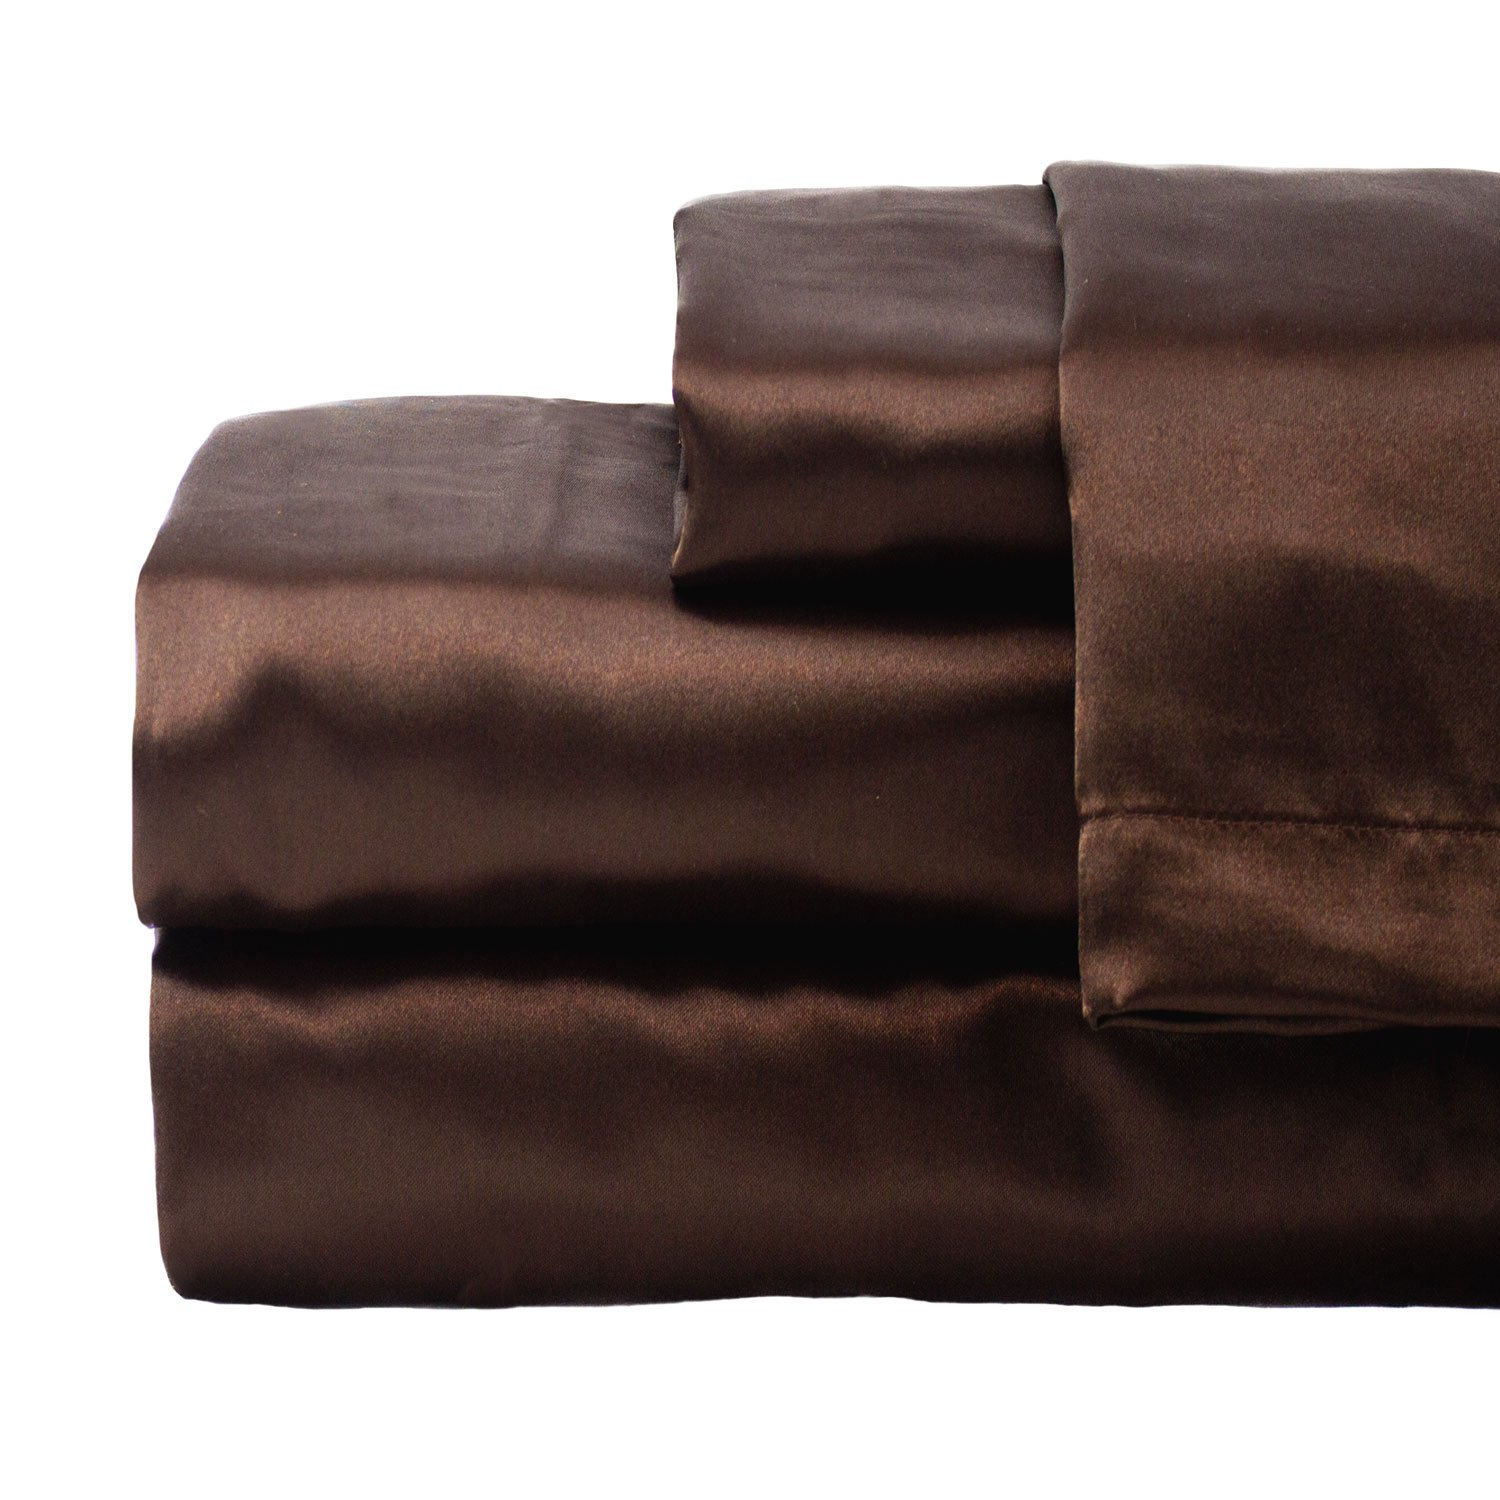 zry_dlifa King size Brown Hotel Collection Satin Sheet Sets